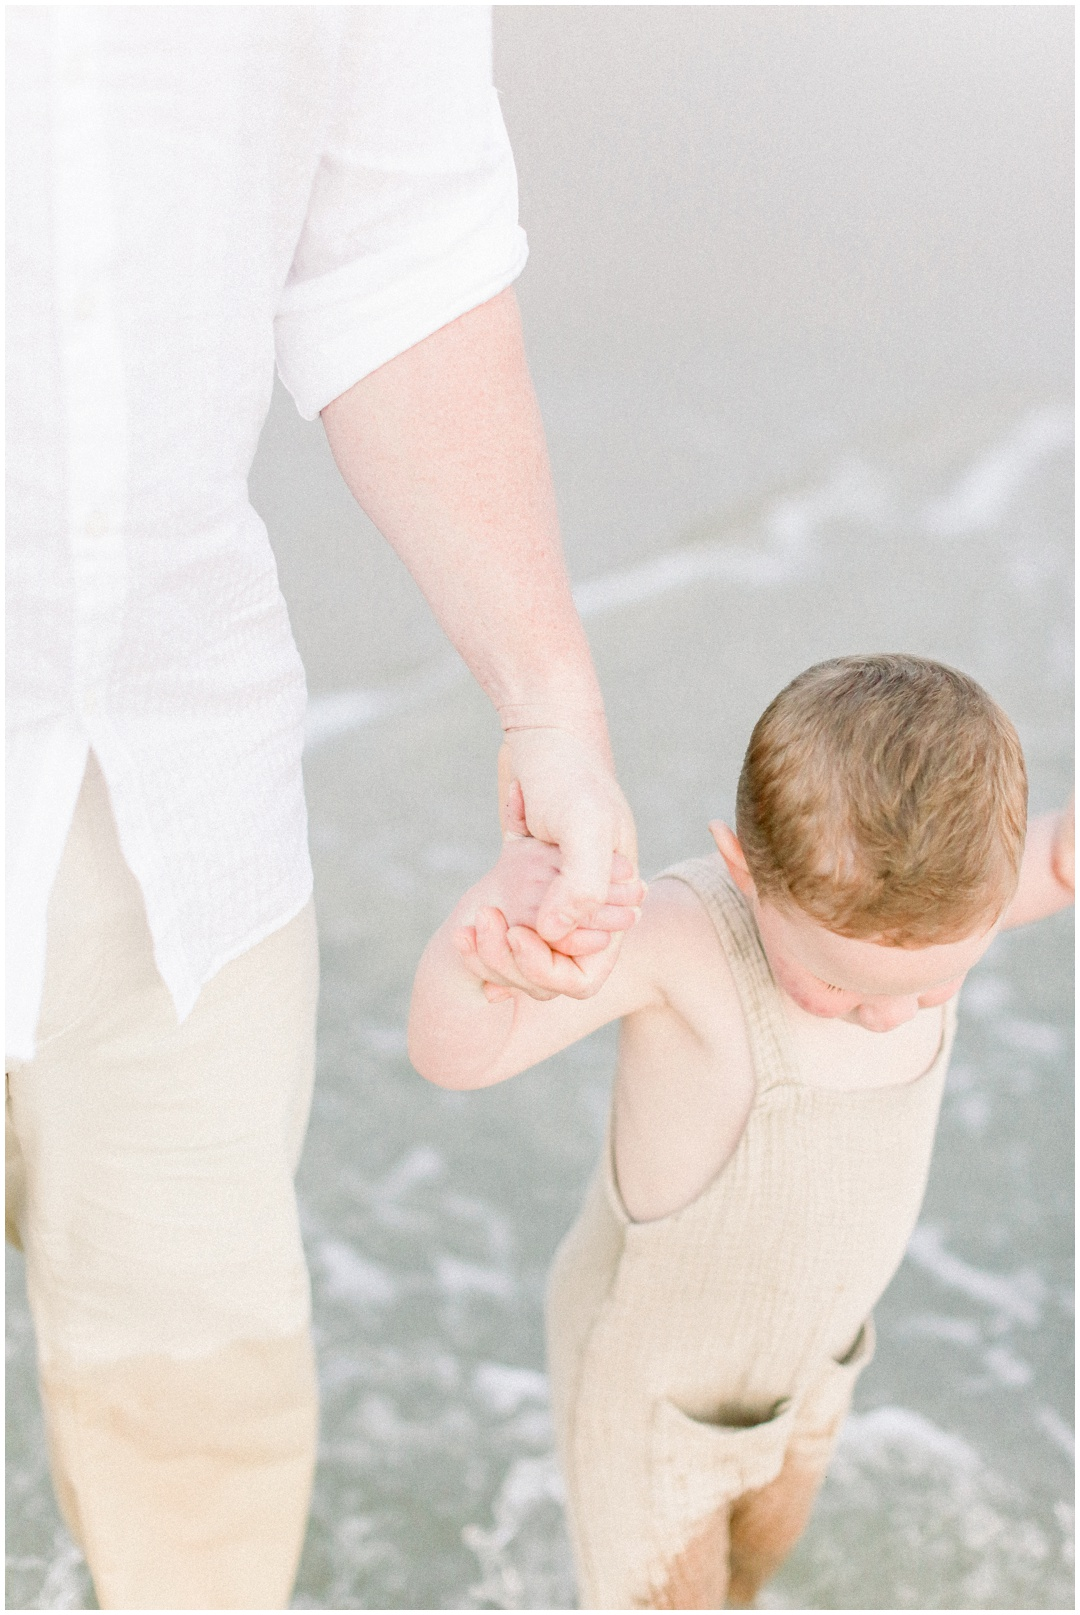 Newport_Beach_Newborn_Light_Airy_Natural_Photographer_Newport_Beach_Photographer_Orange_County_Family_Photographer_Cori_Kleckner_Photography_Newport_Beach_Photographer_Maternity_kole_calhoun56_kole_calhoun_Jennifer_Calhoun_Knox_Calhoun_3707.jpg